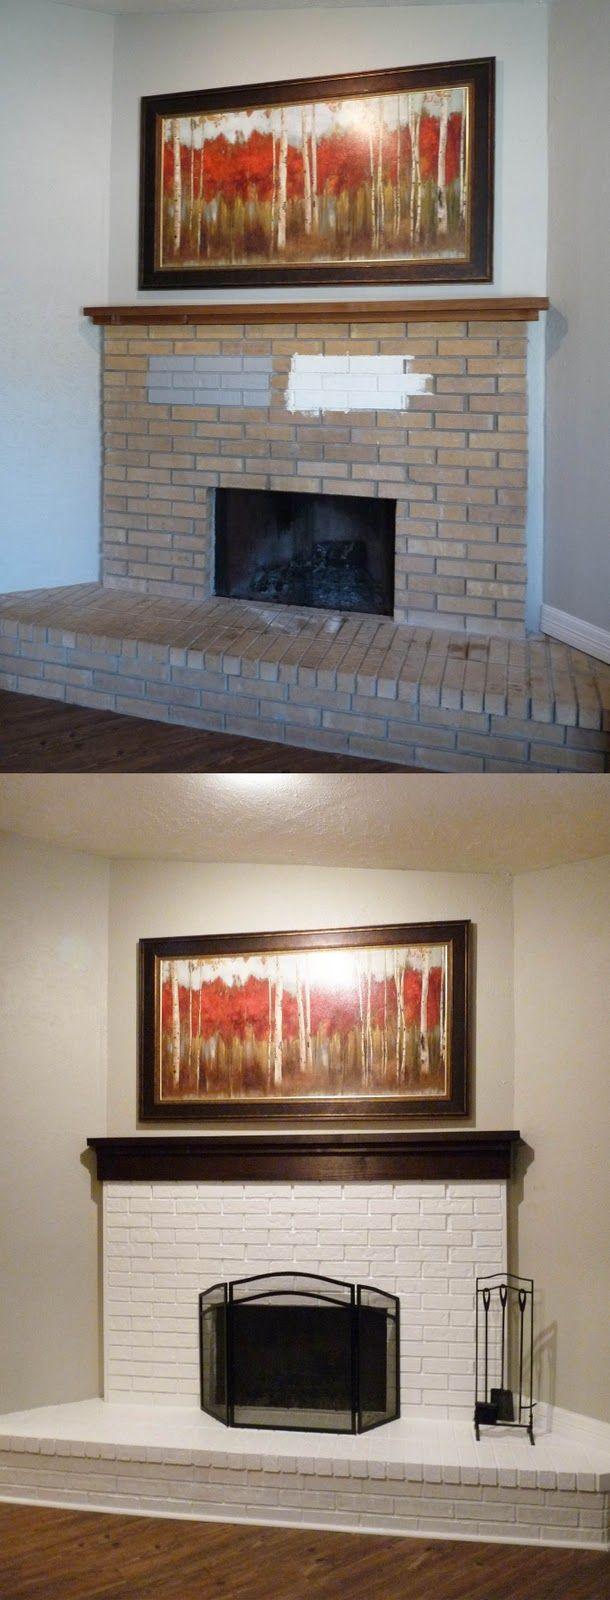 DIY brick fireplace painted white Would love to paint my brick